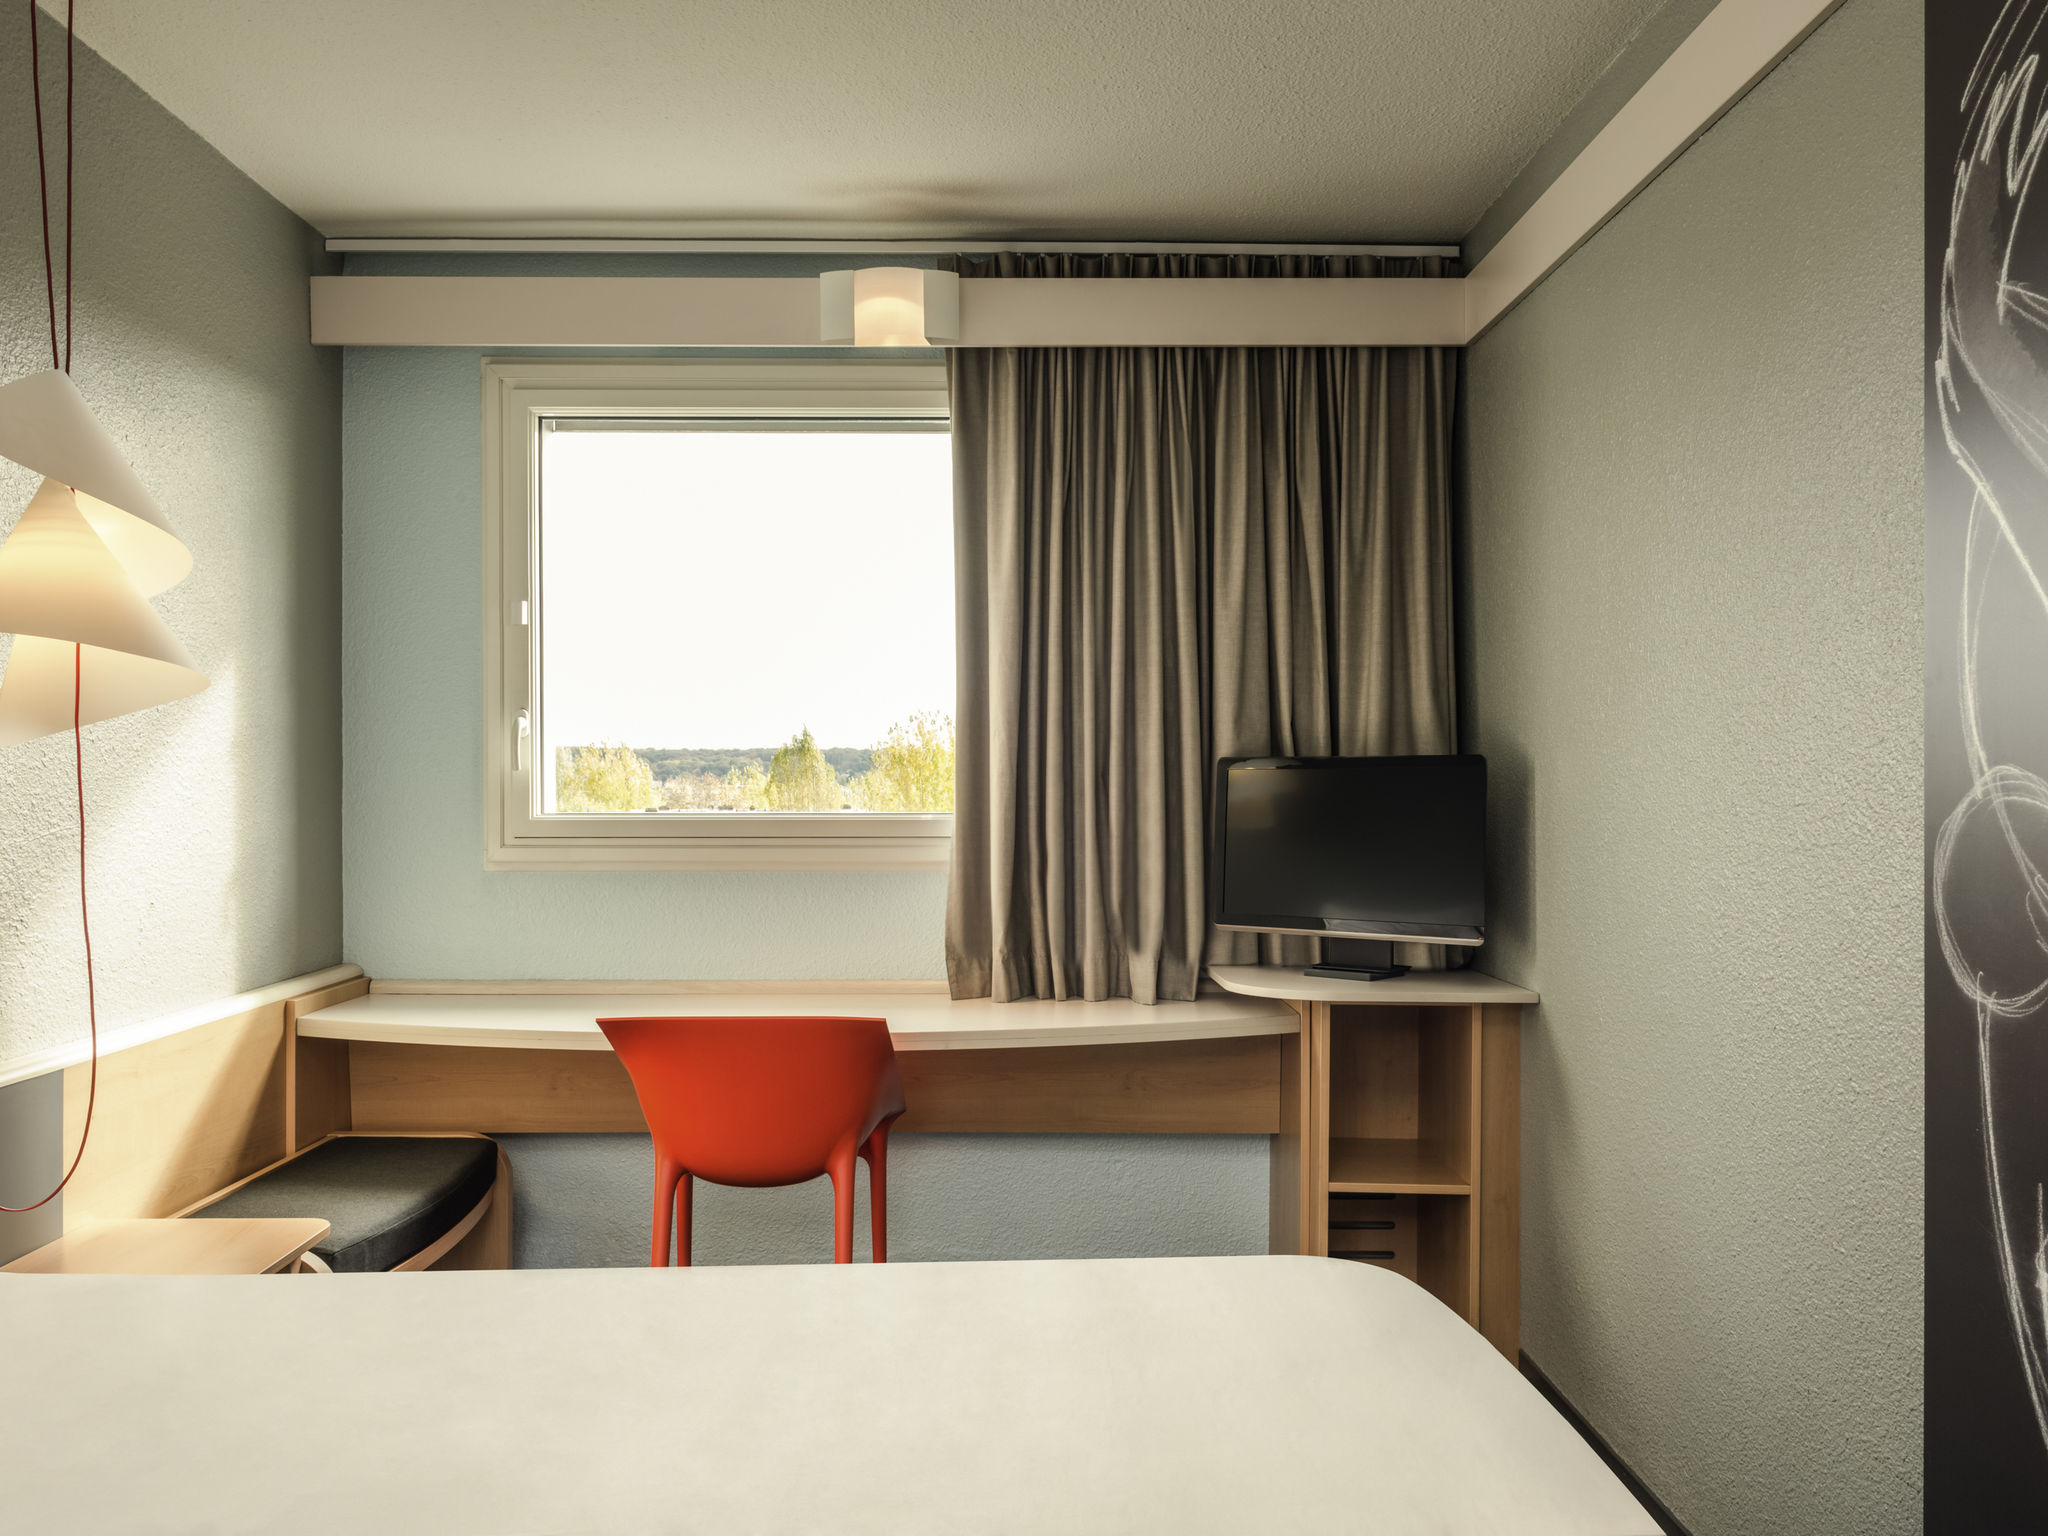 Superior Galerie Lafayette Parly 2 #12: Hotel - Ibis Versailles Parly 2